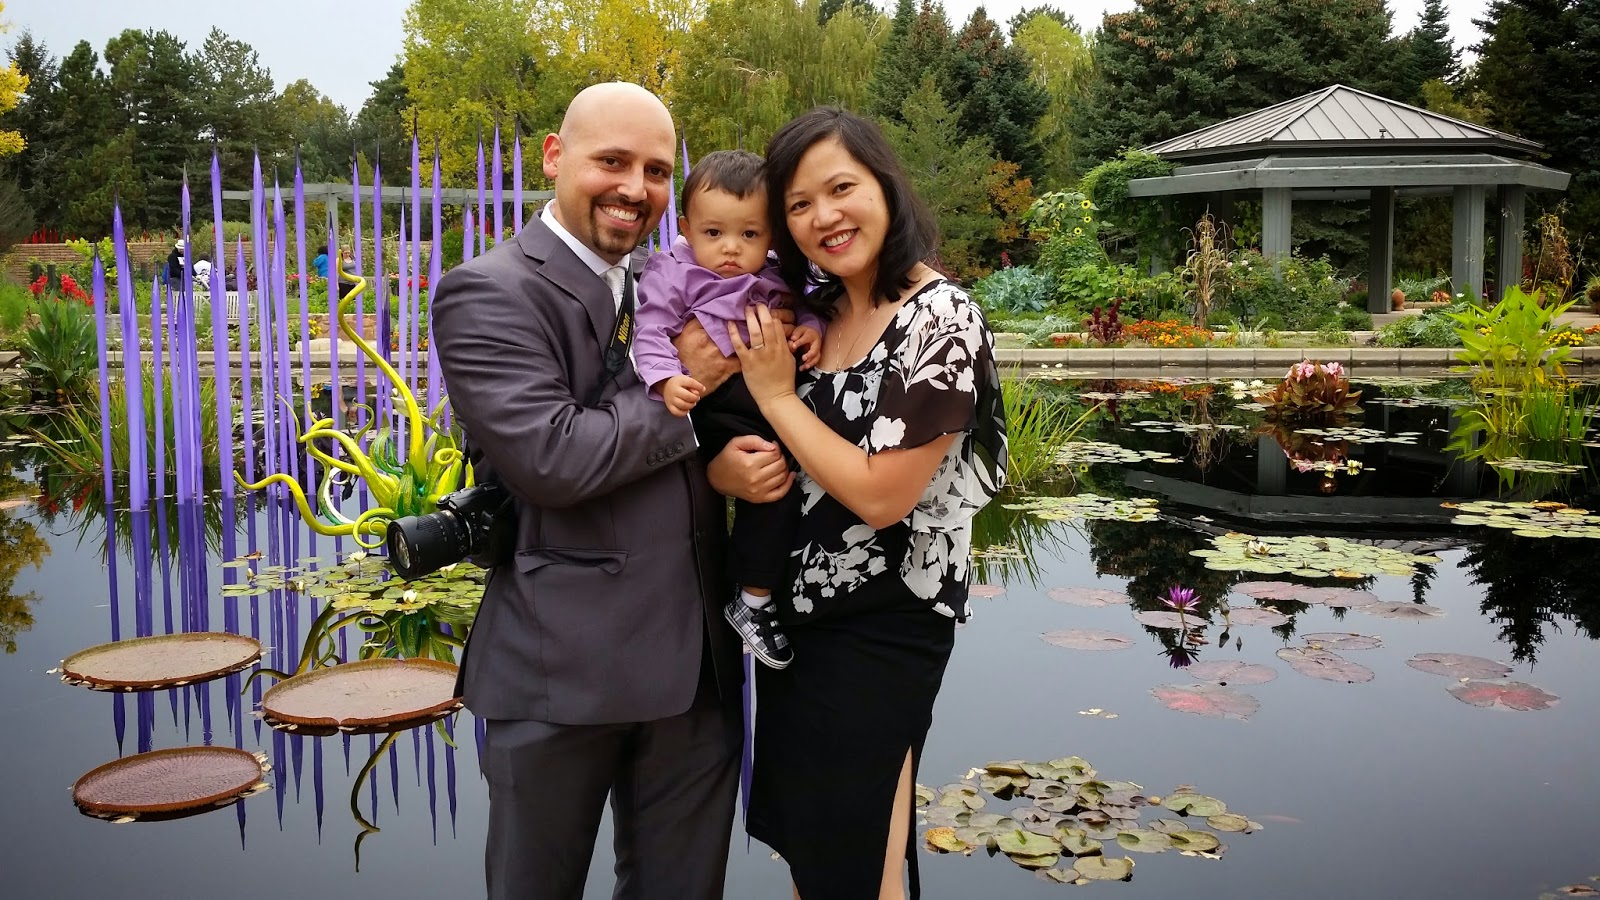 DJ Emir Wife and Son at Denver Botanic Gardens